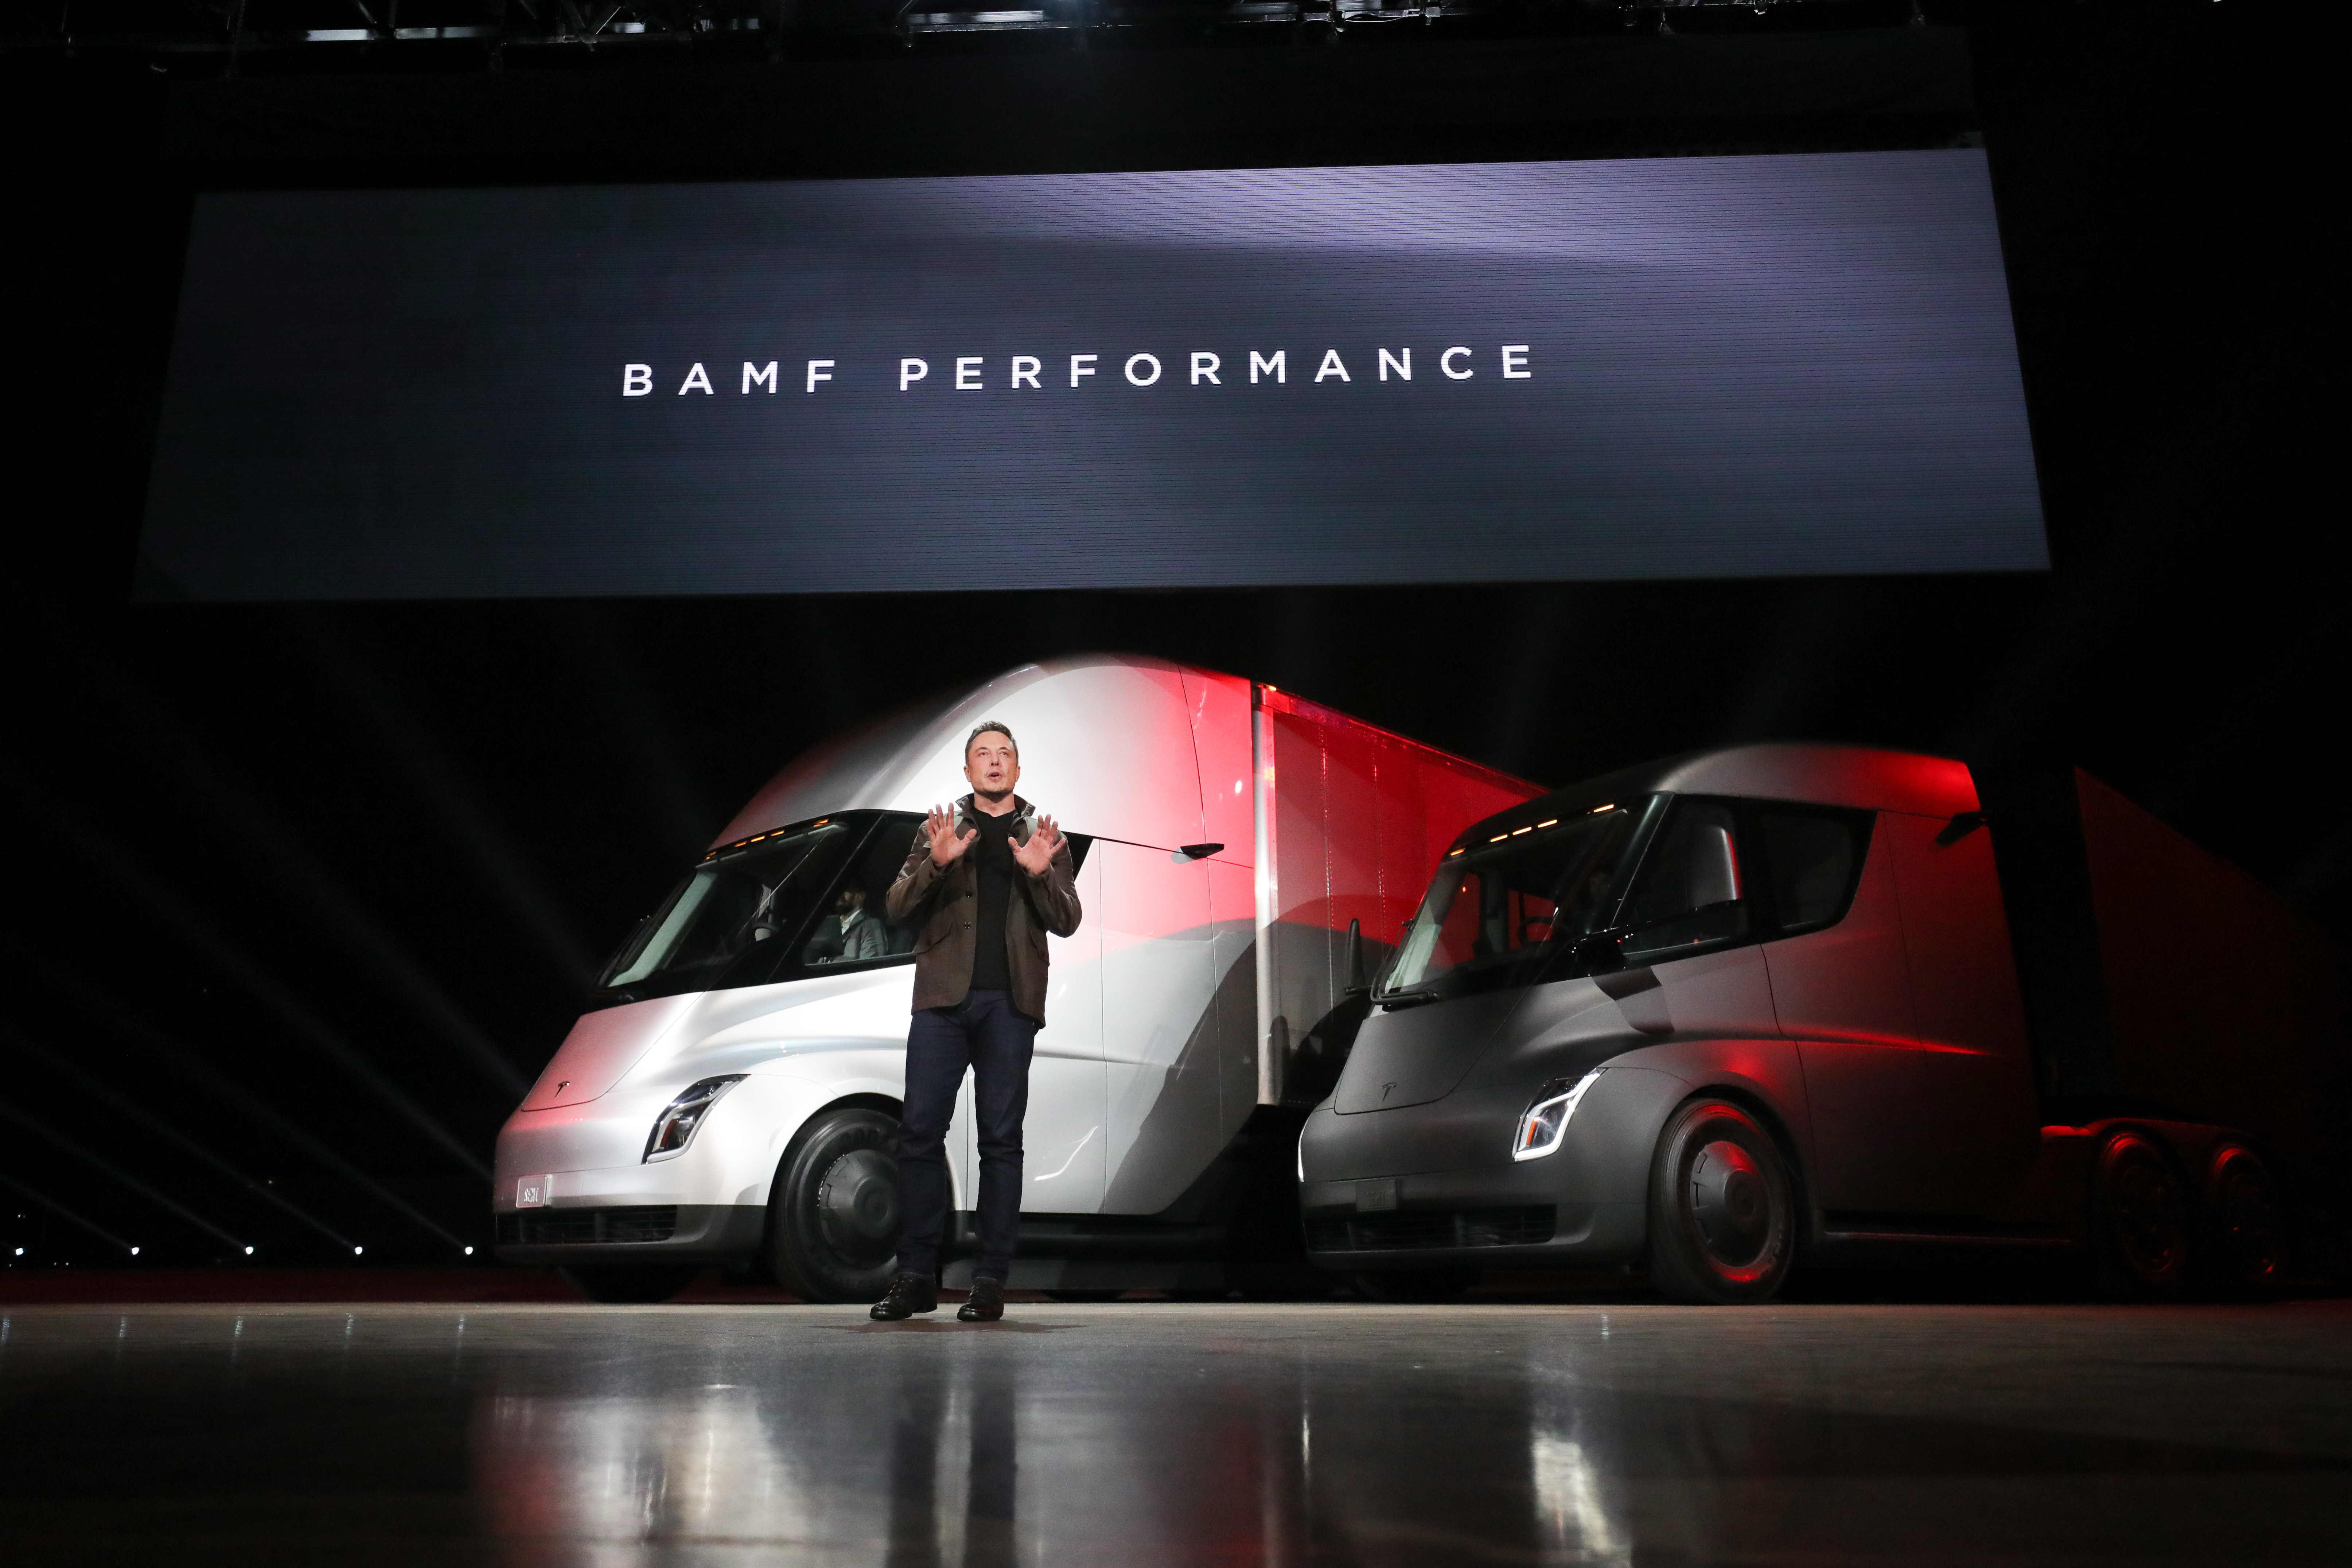 tesla-semi-bamf-performance